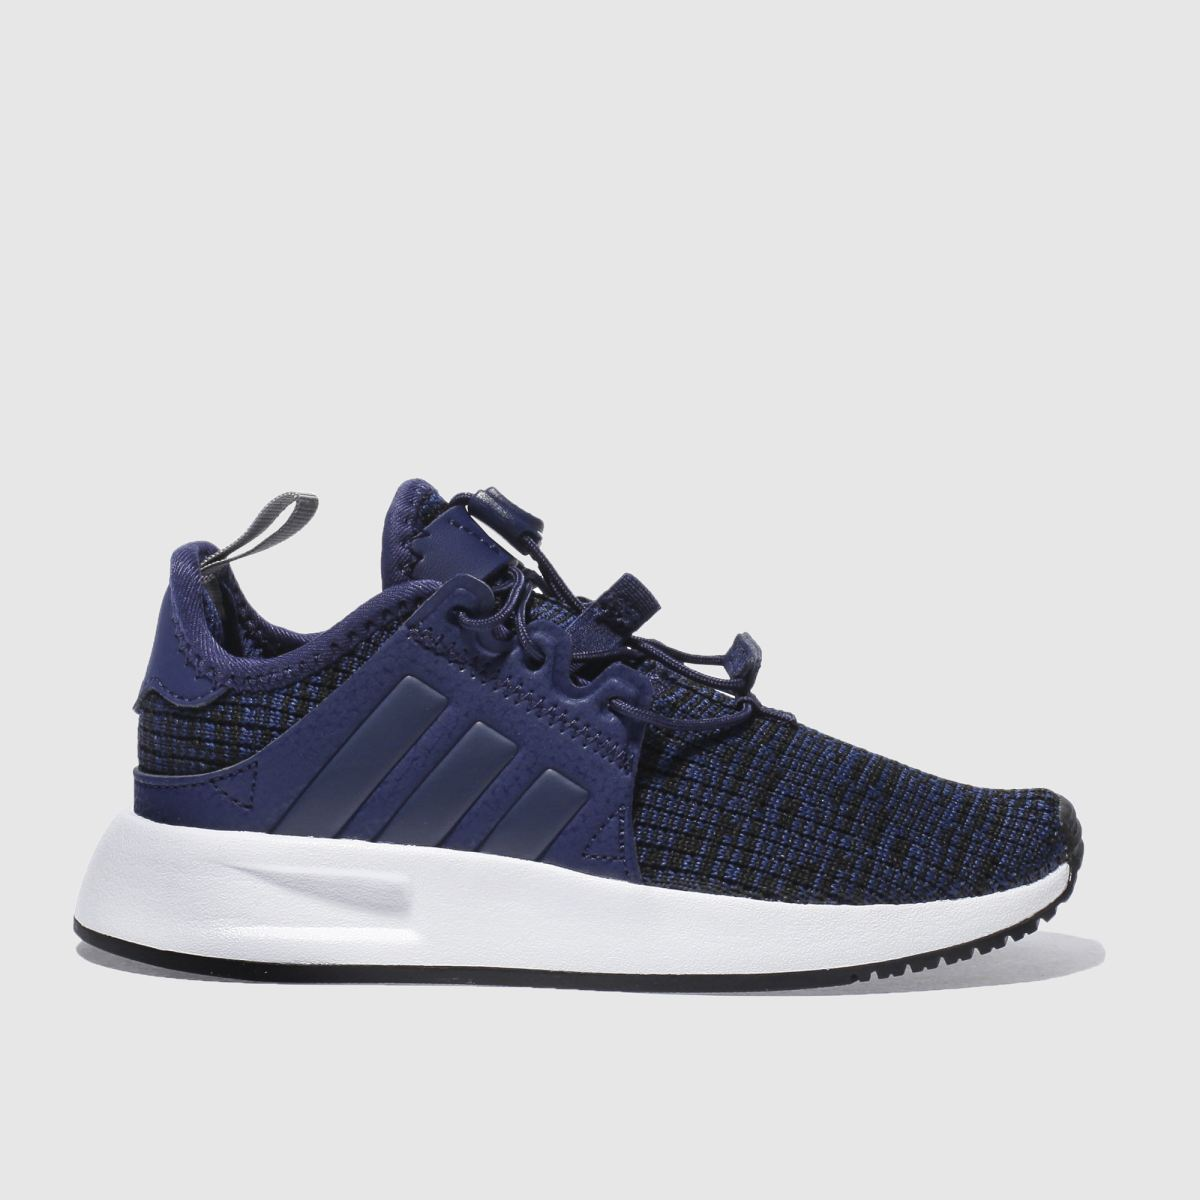 adidas navy x_plr c Boys Junior Trainers